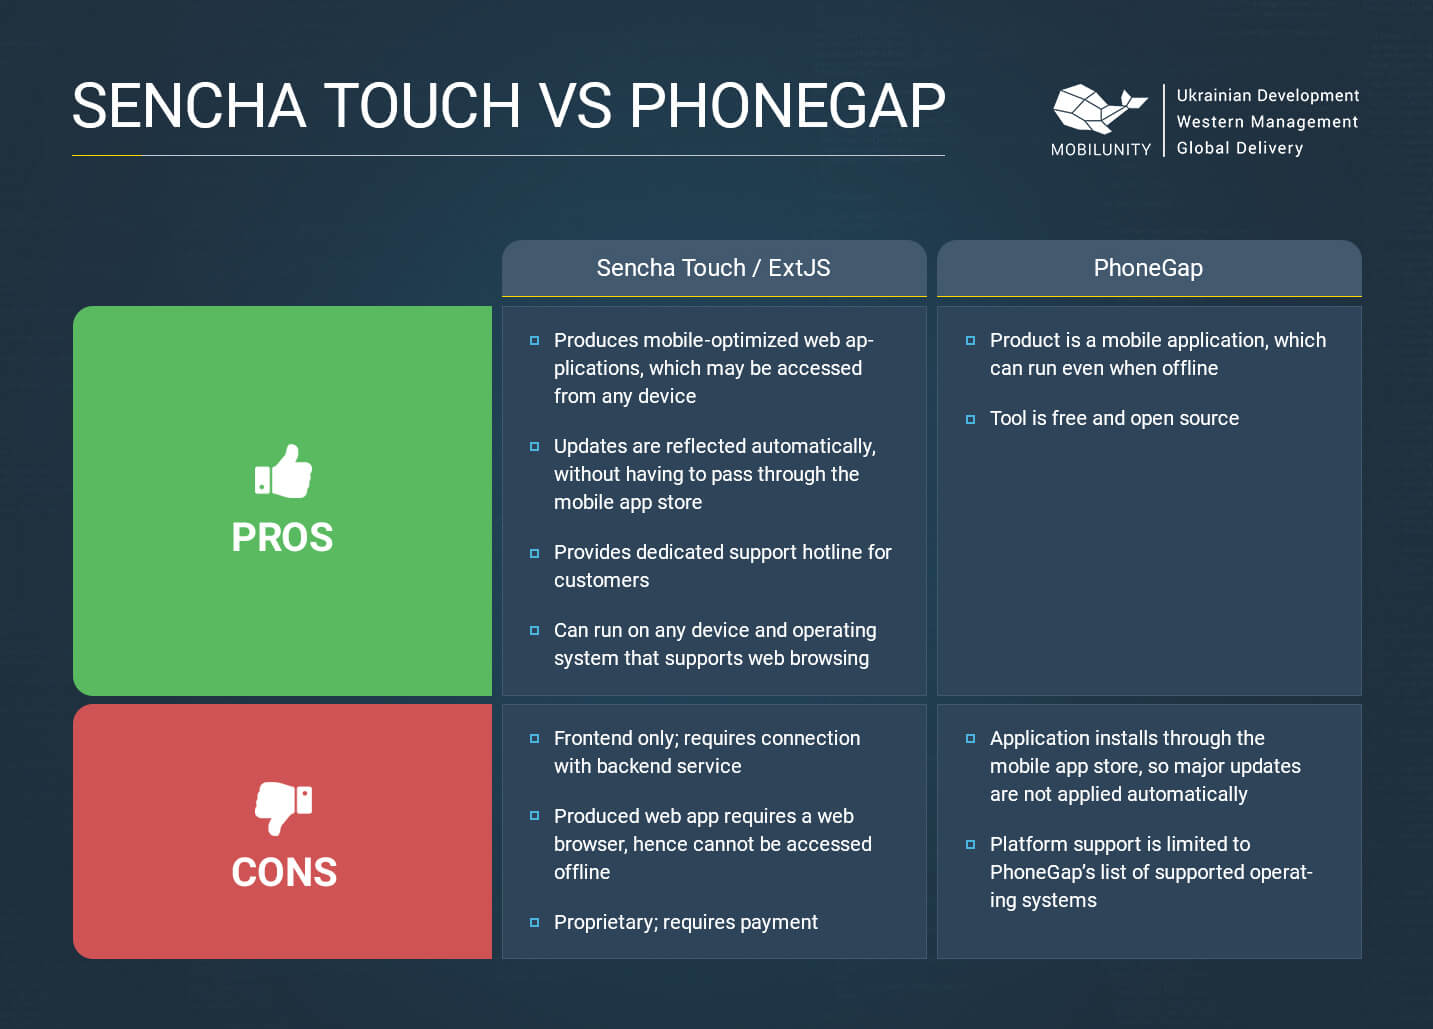 sencha touch vs phonegap